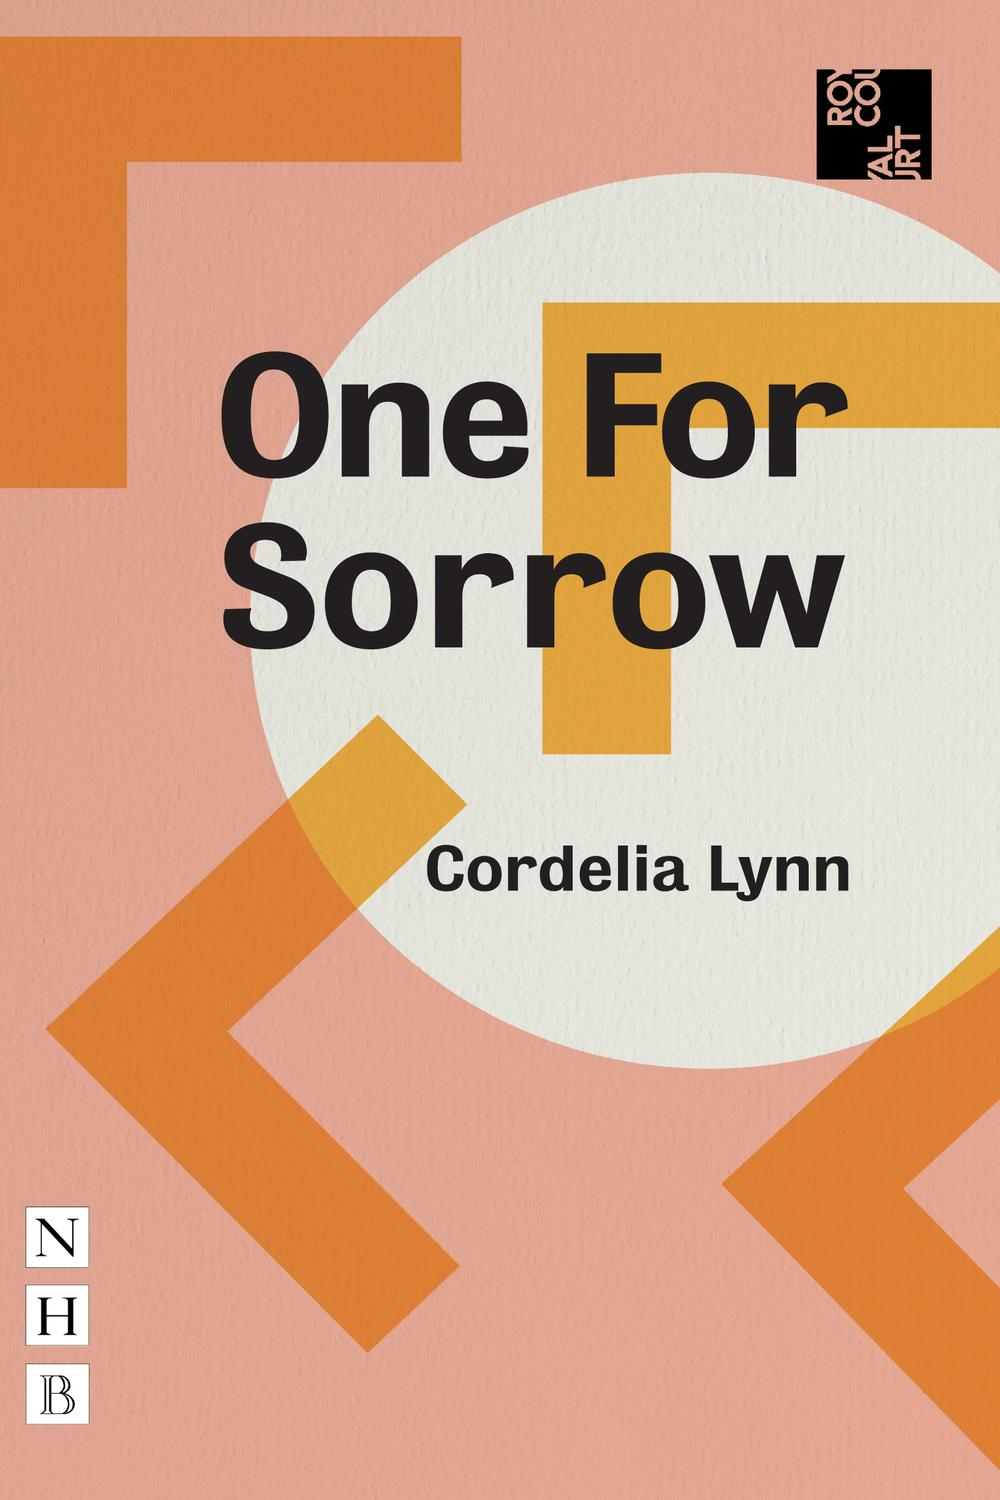 One for sorrow pdf free. download full